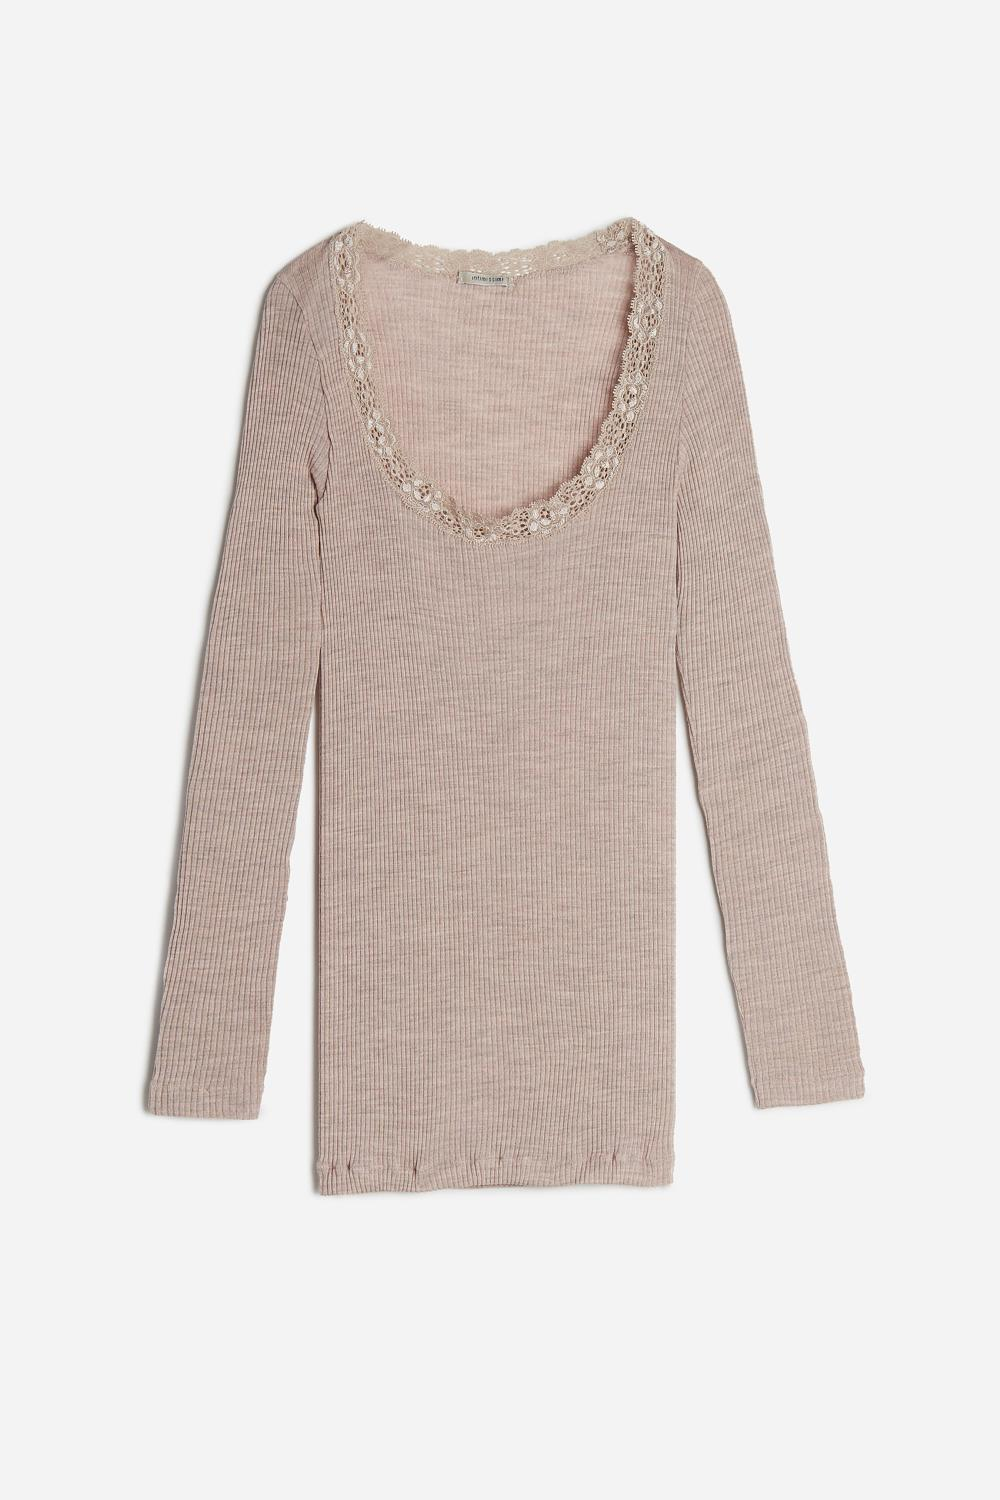 Silk and Wool Top with Lace-Detail Neckline